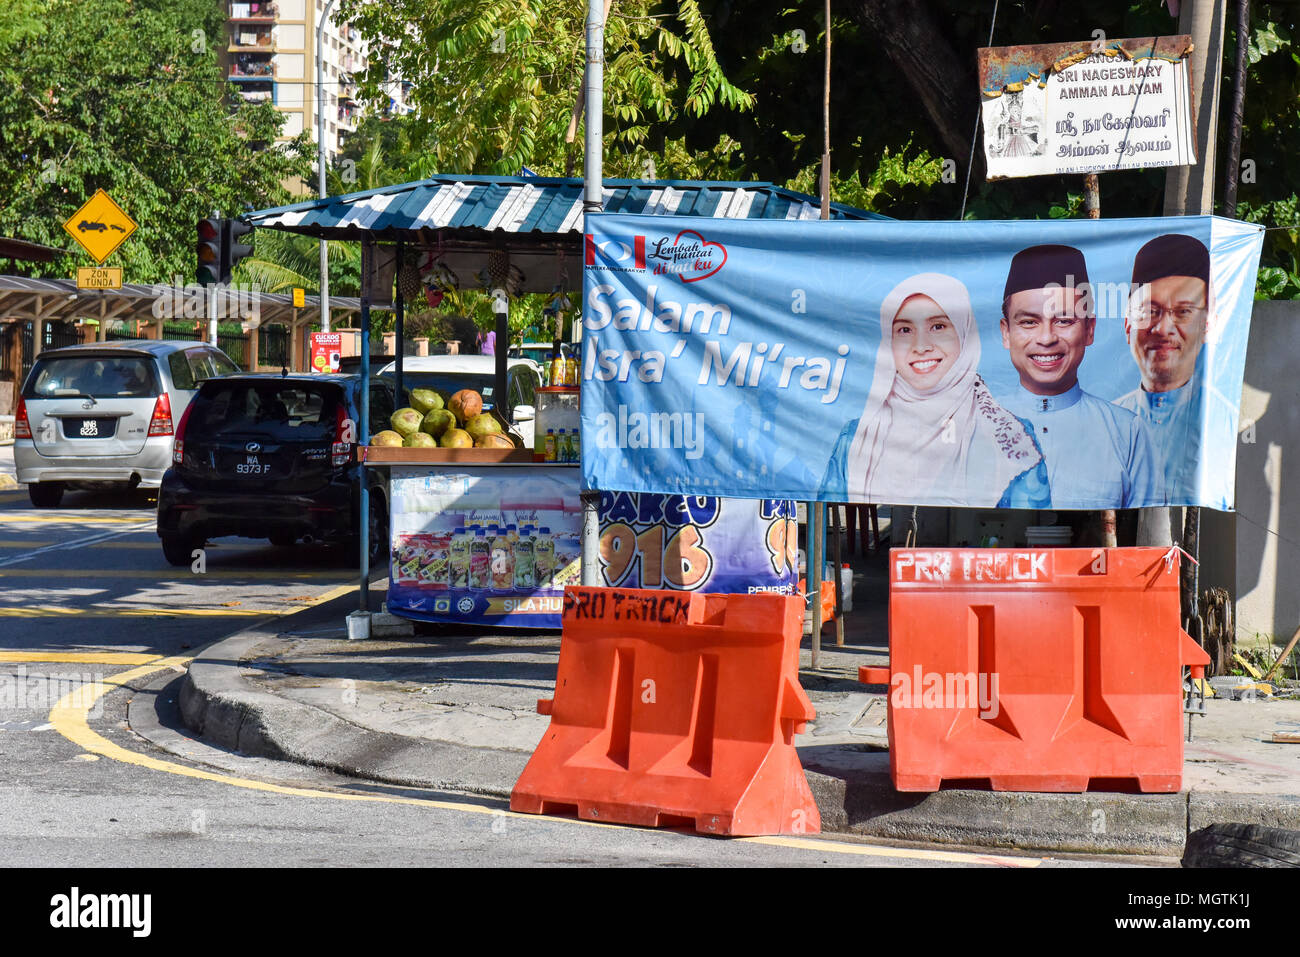 Malaysians are gearing up for a general election on May 9, with more then 2,000 candidates, including a 92-year old former prime minister, running for the 222 parliamentary seats. Current prime minister Najib Razak is expected to remain in power despite rising living costs and political scandals. - Stock Image